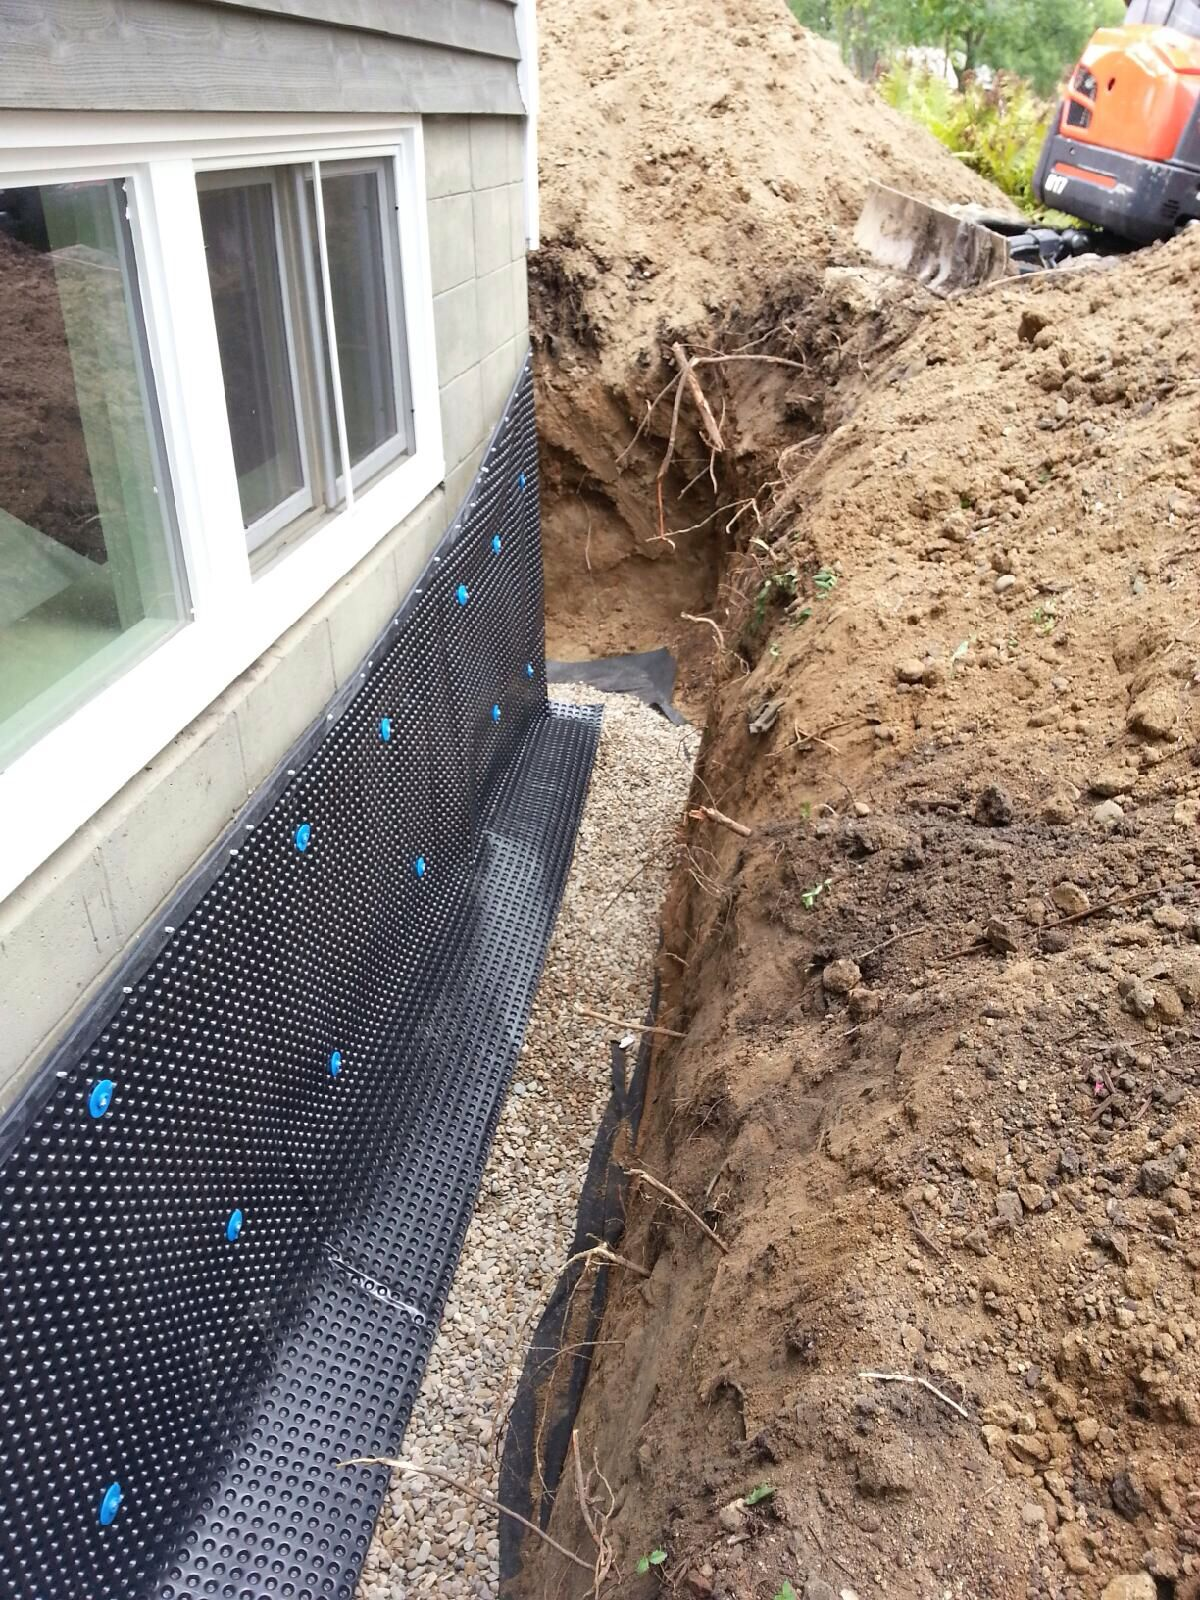 Affordable Egress Windows & Basement Waterproofing LLC